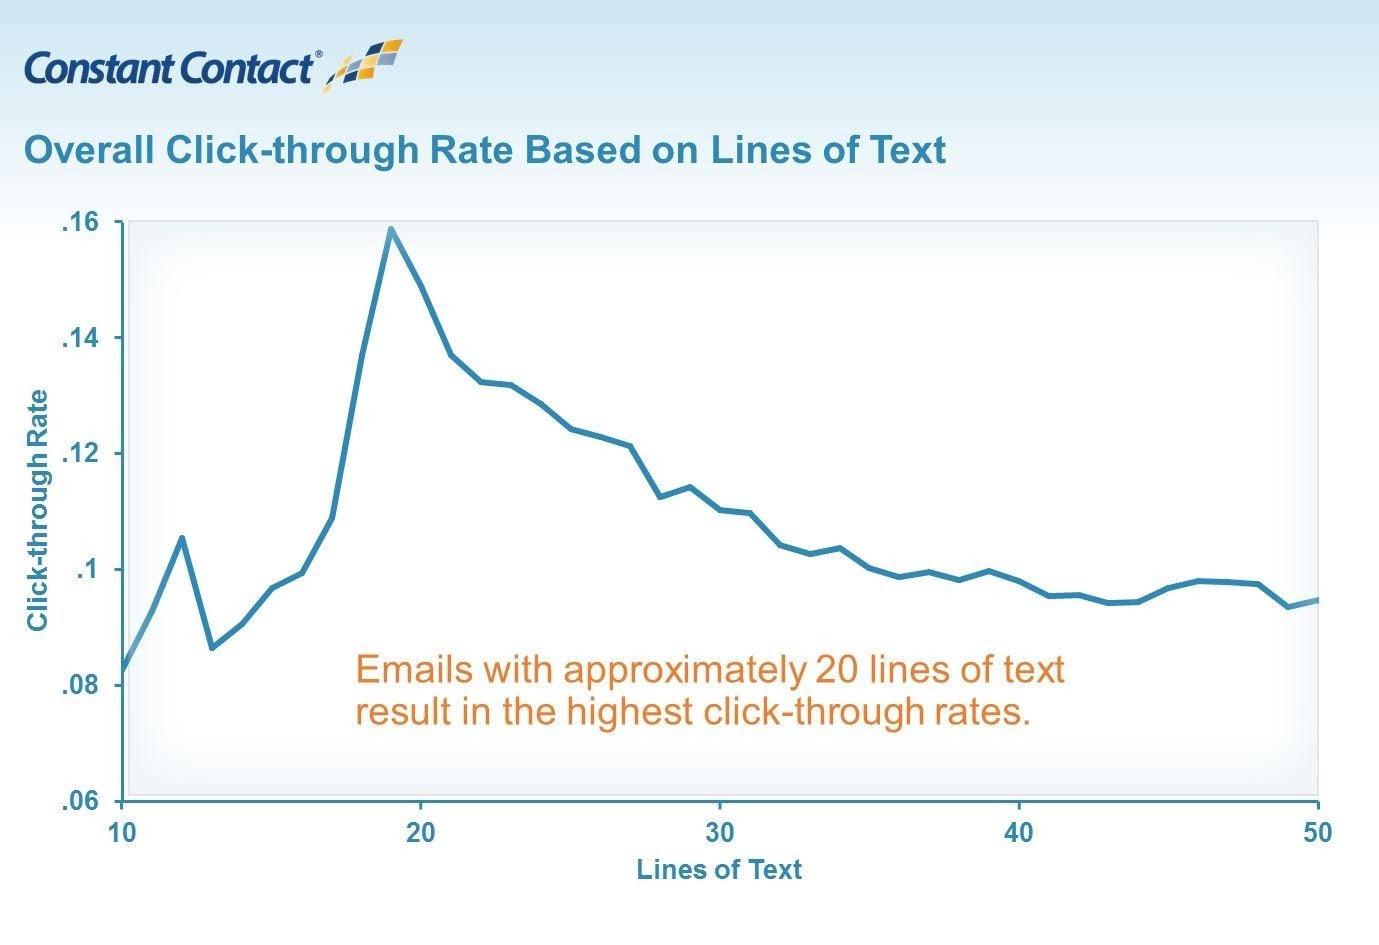 Email click through rate trends